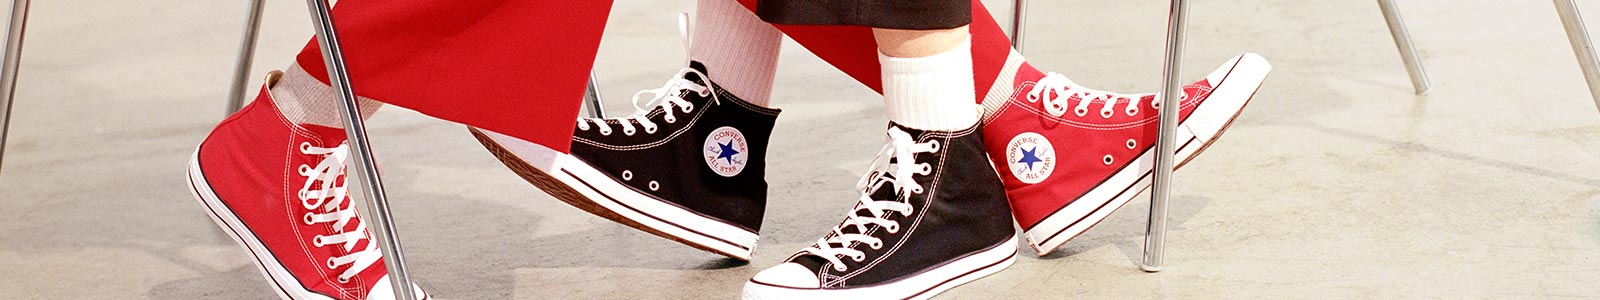 Converse's banner